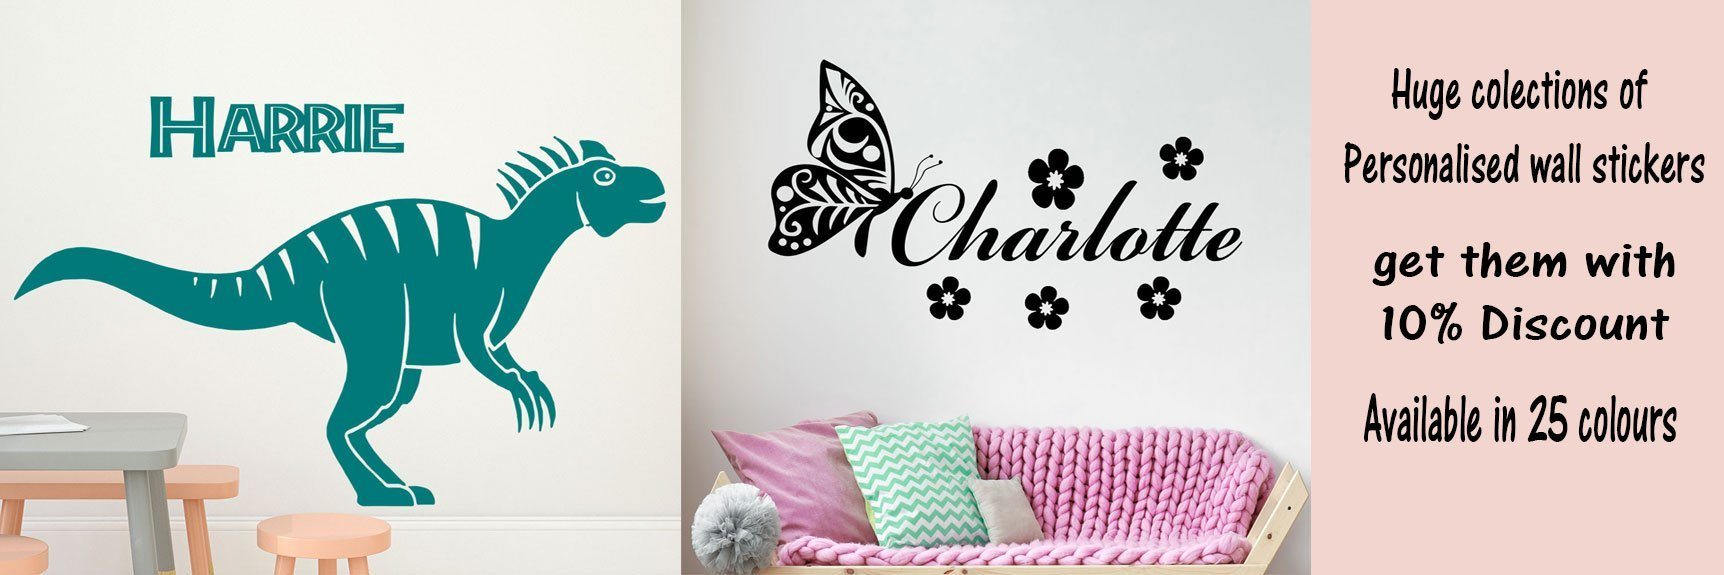 Personalised and custom wall stickers